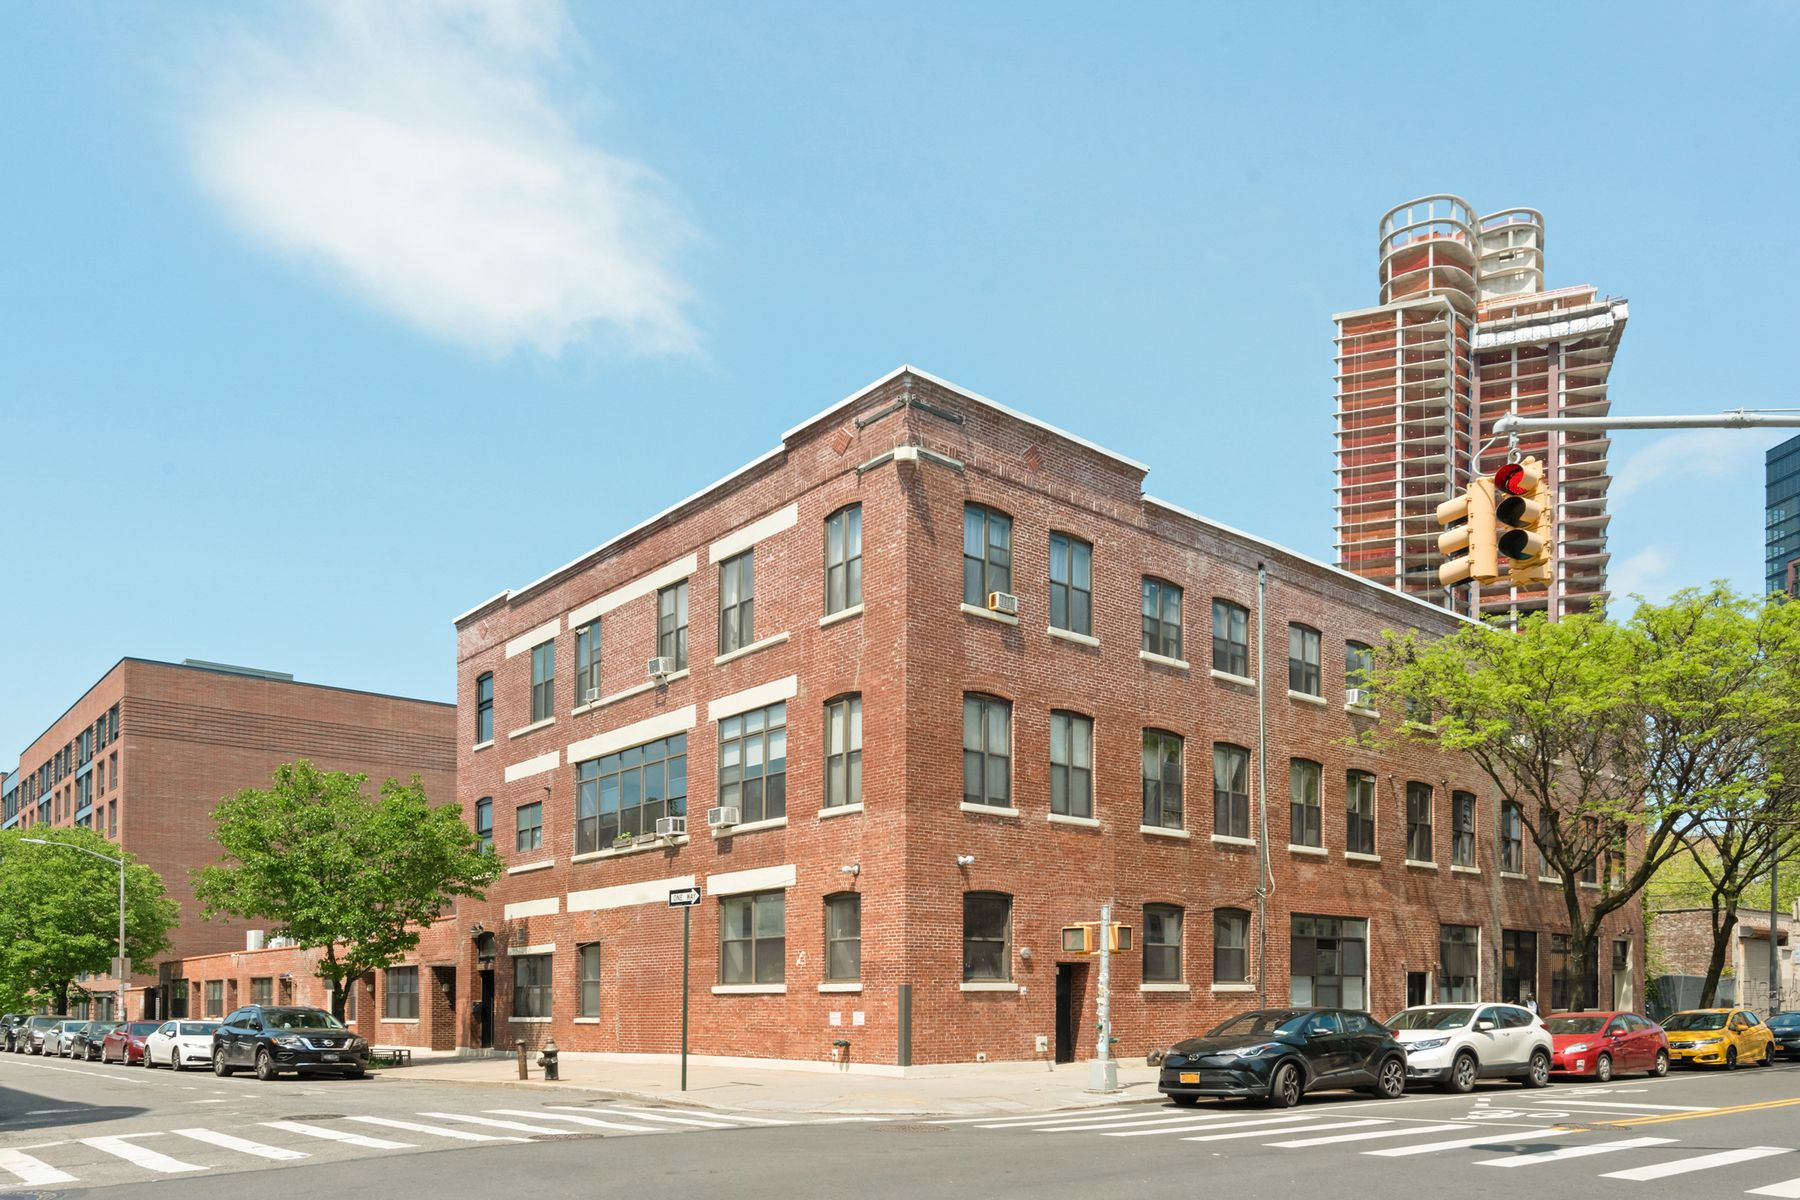 Townhouse for Sale at Greenpoint Value Creation Opportunity 233 Franklin Street Brooklyn, New York 11222 United States